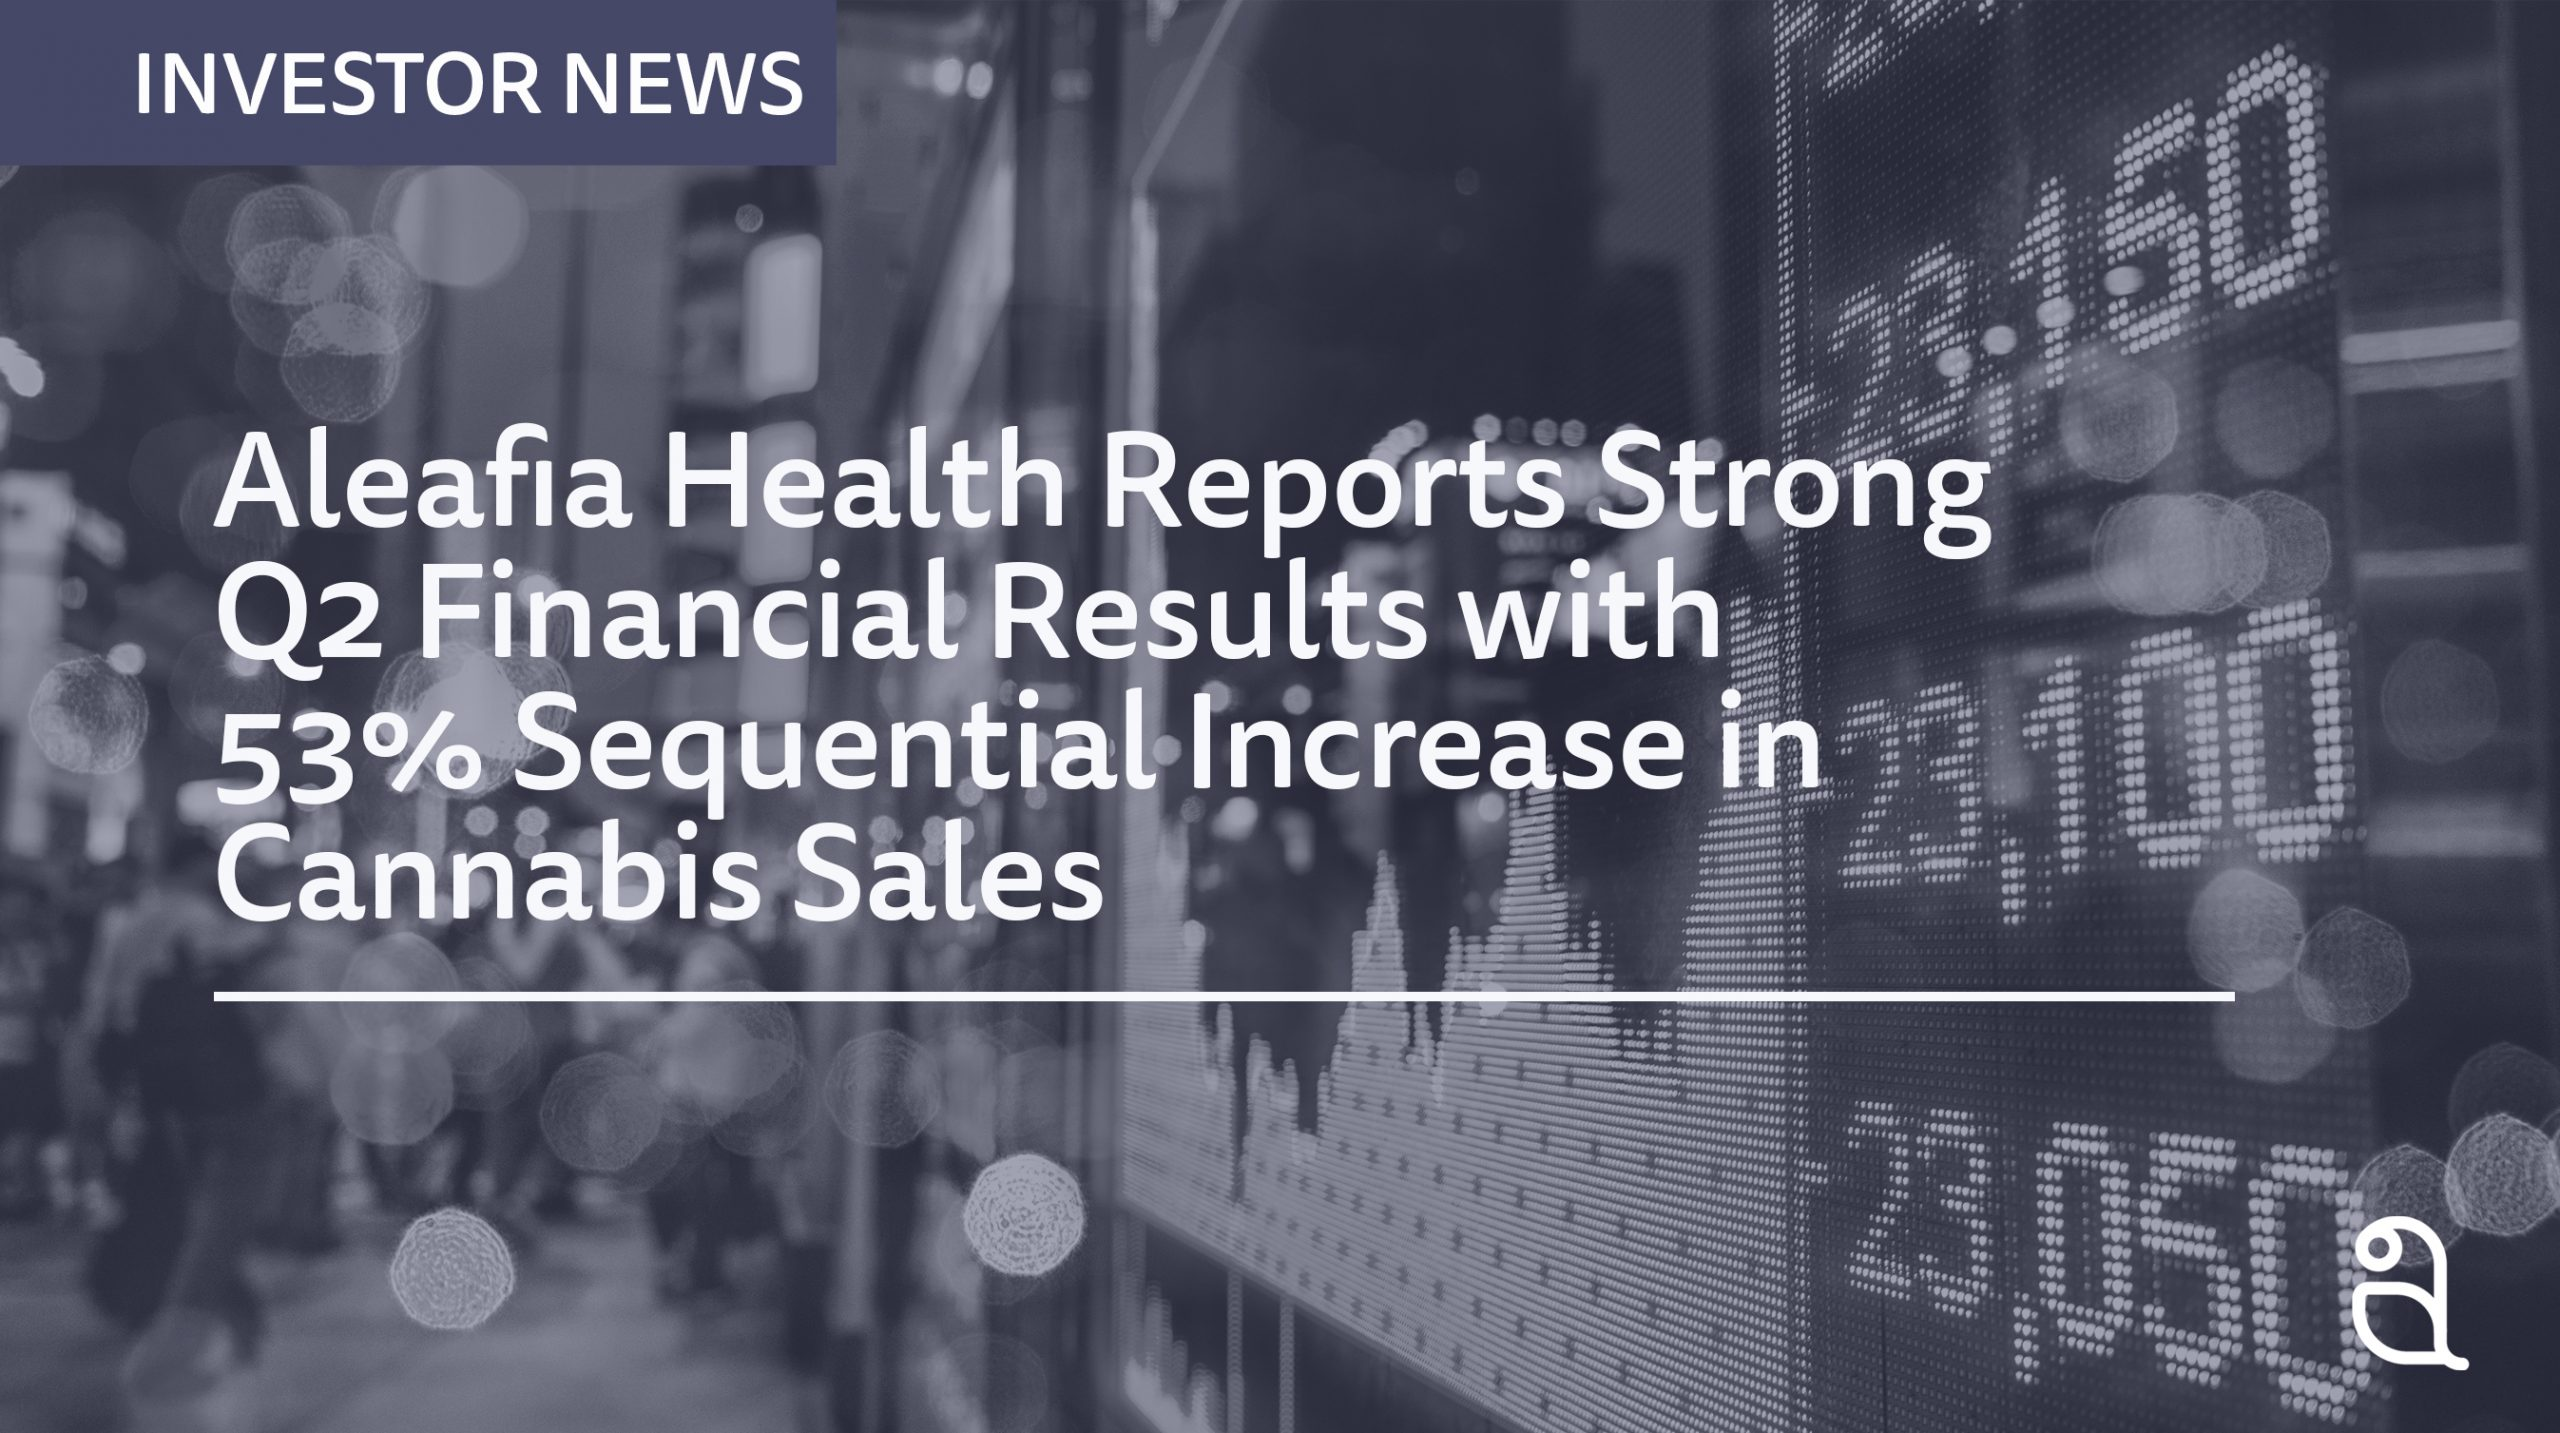 Aleafia Health Reports Strong 2021 Second Quarter Financial Results with 53% Sequential Increase in Cannabis Net Revenue